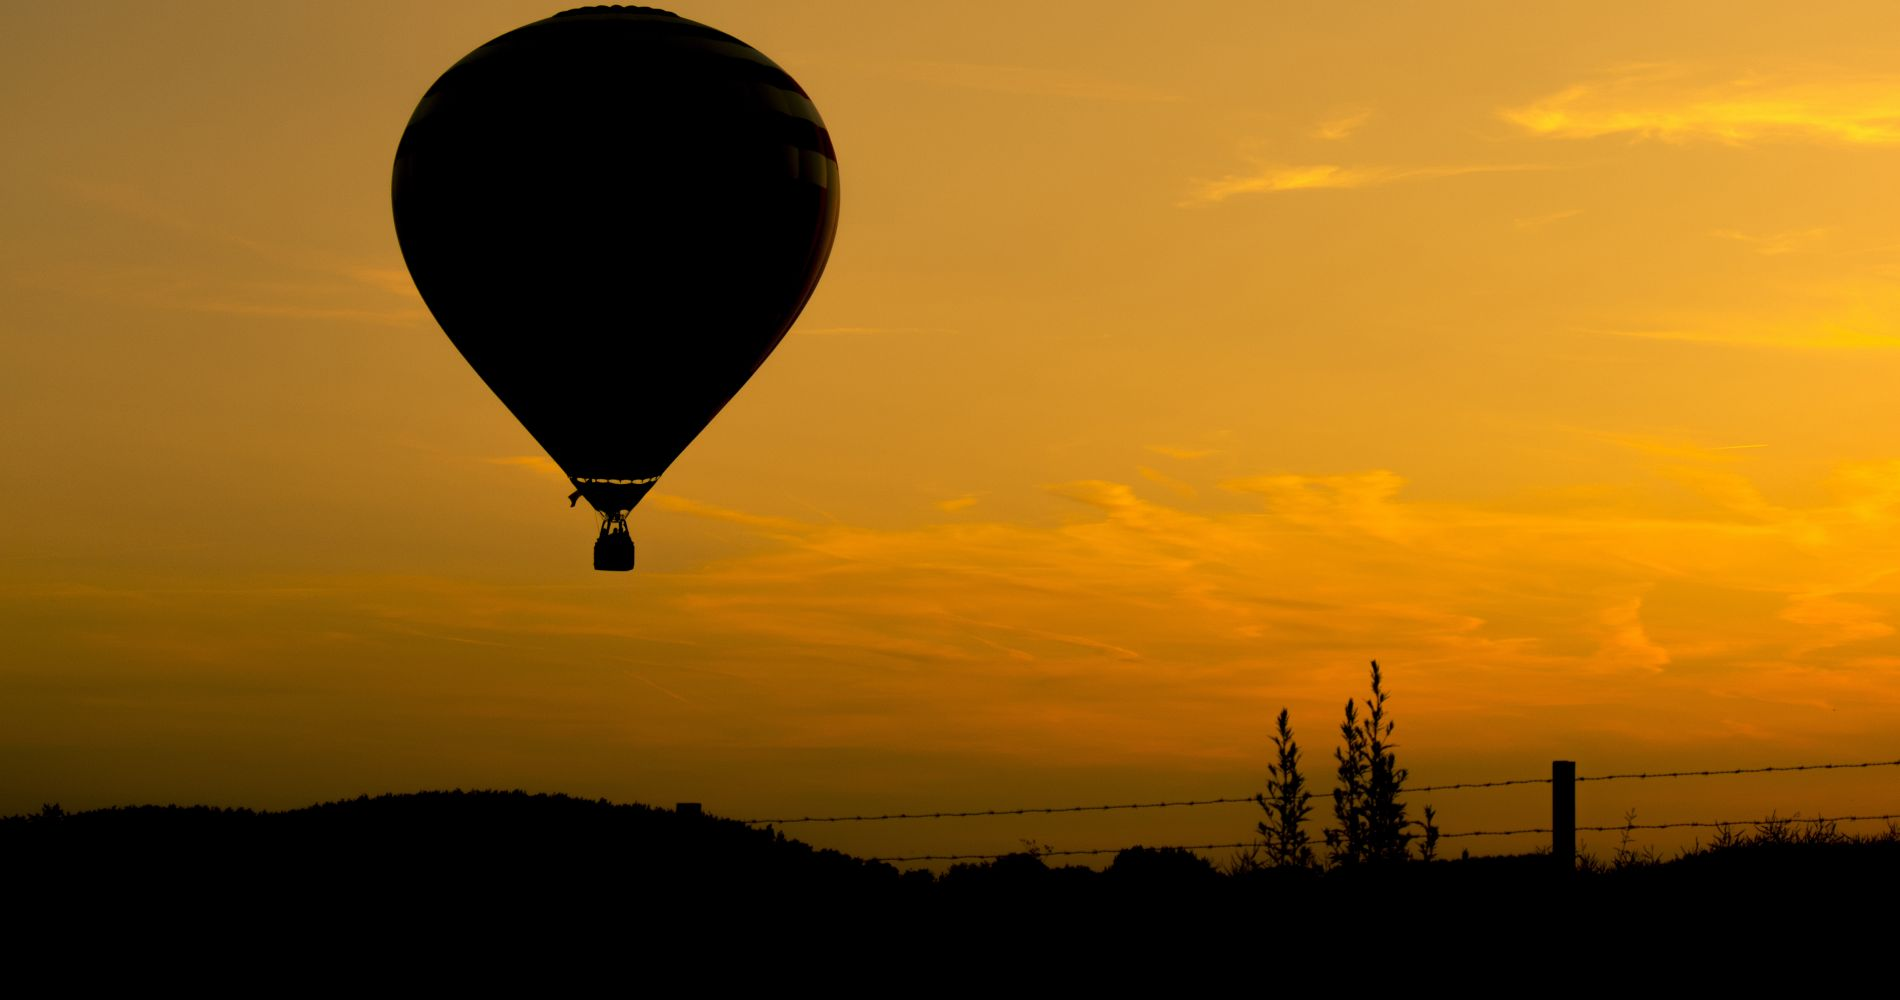 Hot Air Balloon Ride above Temecula Valley California Tinggly Experience Gifts